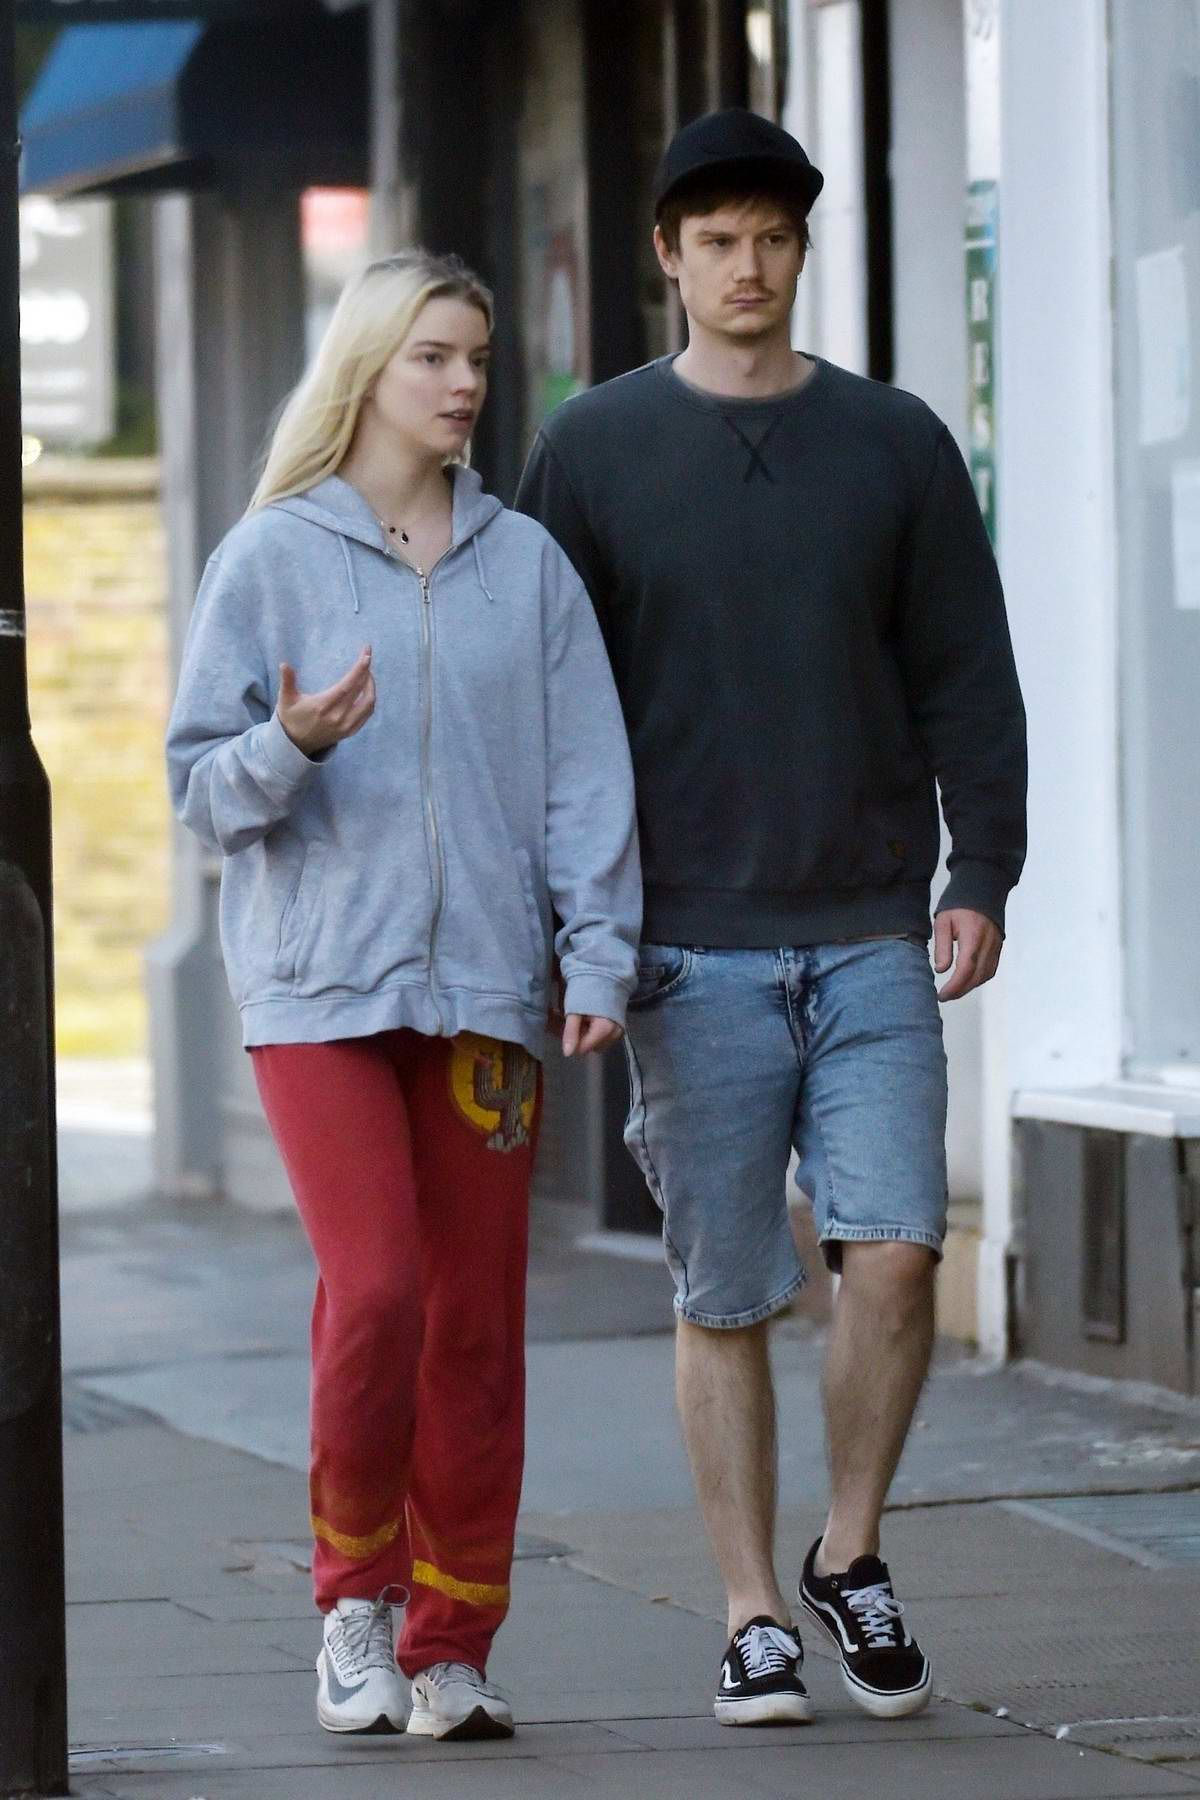 Anya Taylor-Joy dresses down in a grey hoodie and red sweatpants while out with boyfriend Ben Seed in London, UK